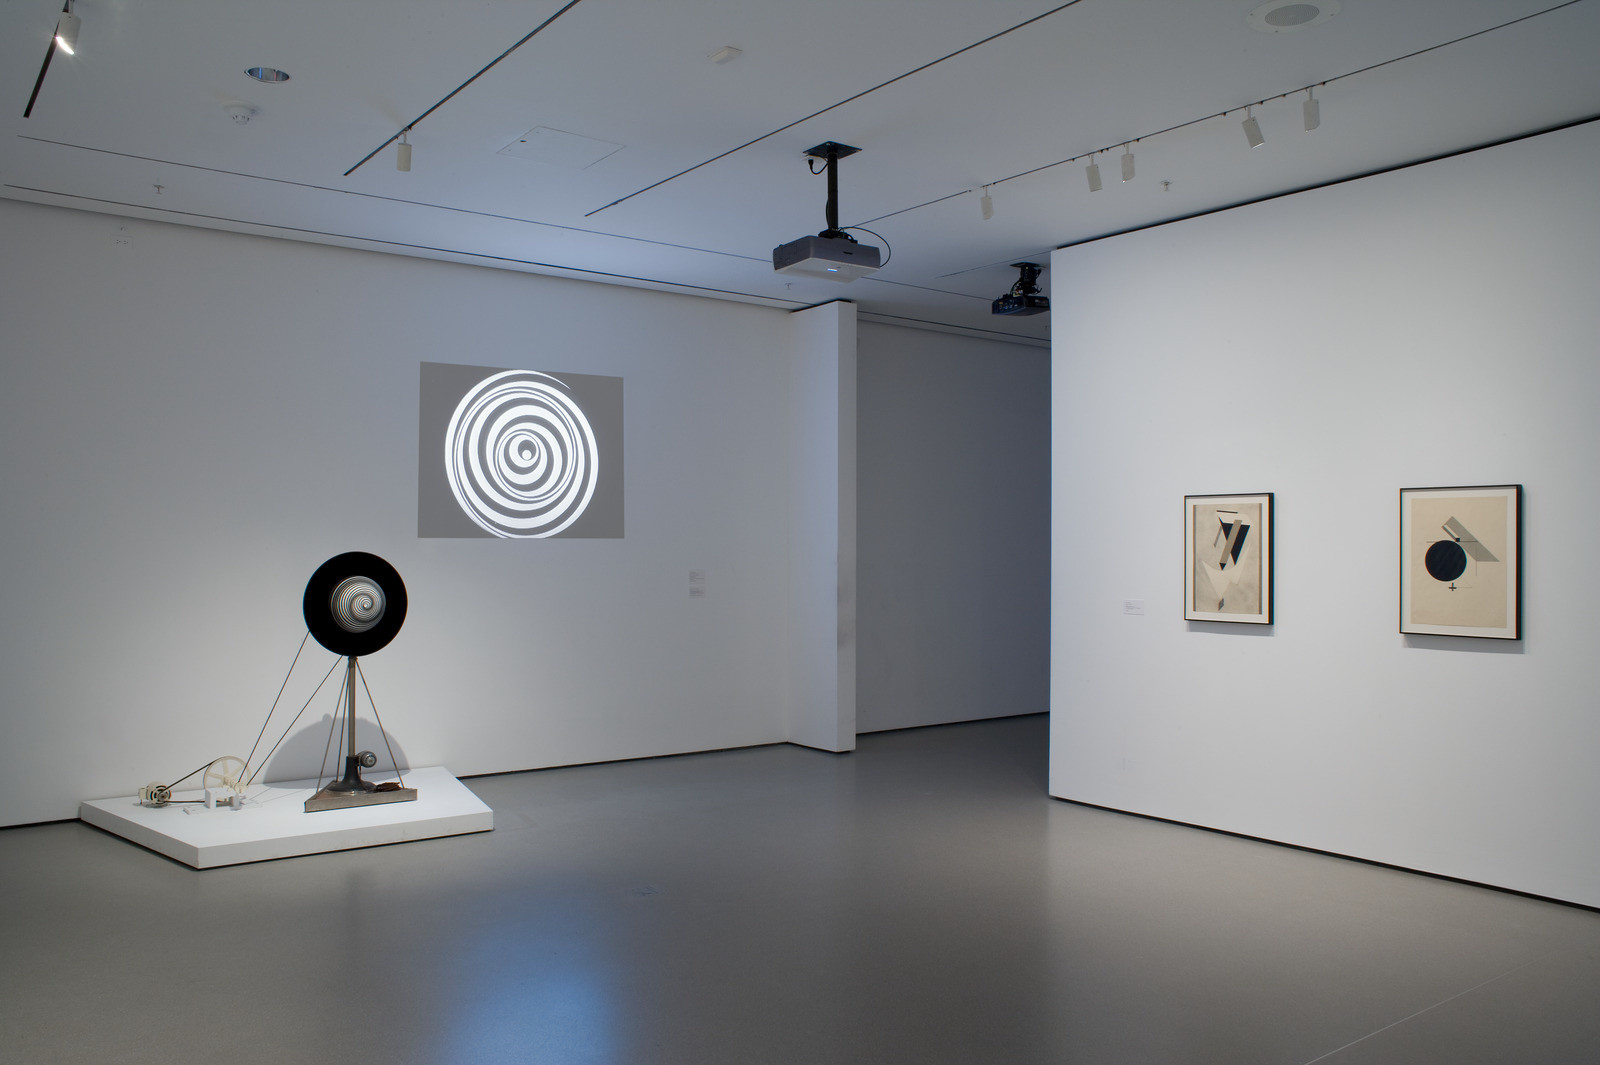 Installation view, Geometry of Motion 1920s/1970s, March 19, 2008–July 28, 2008